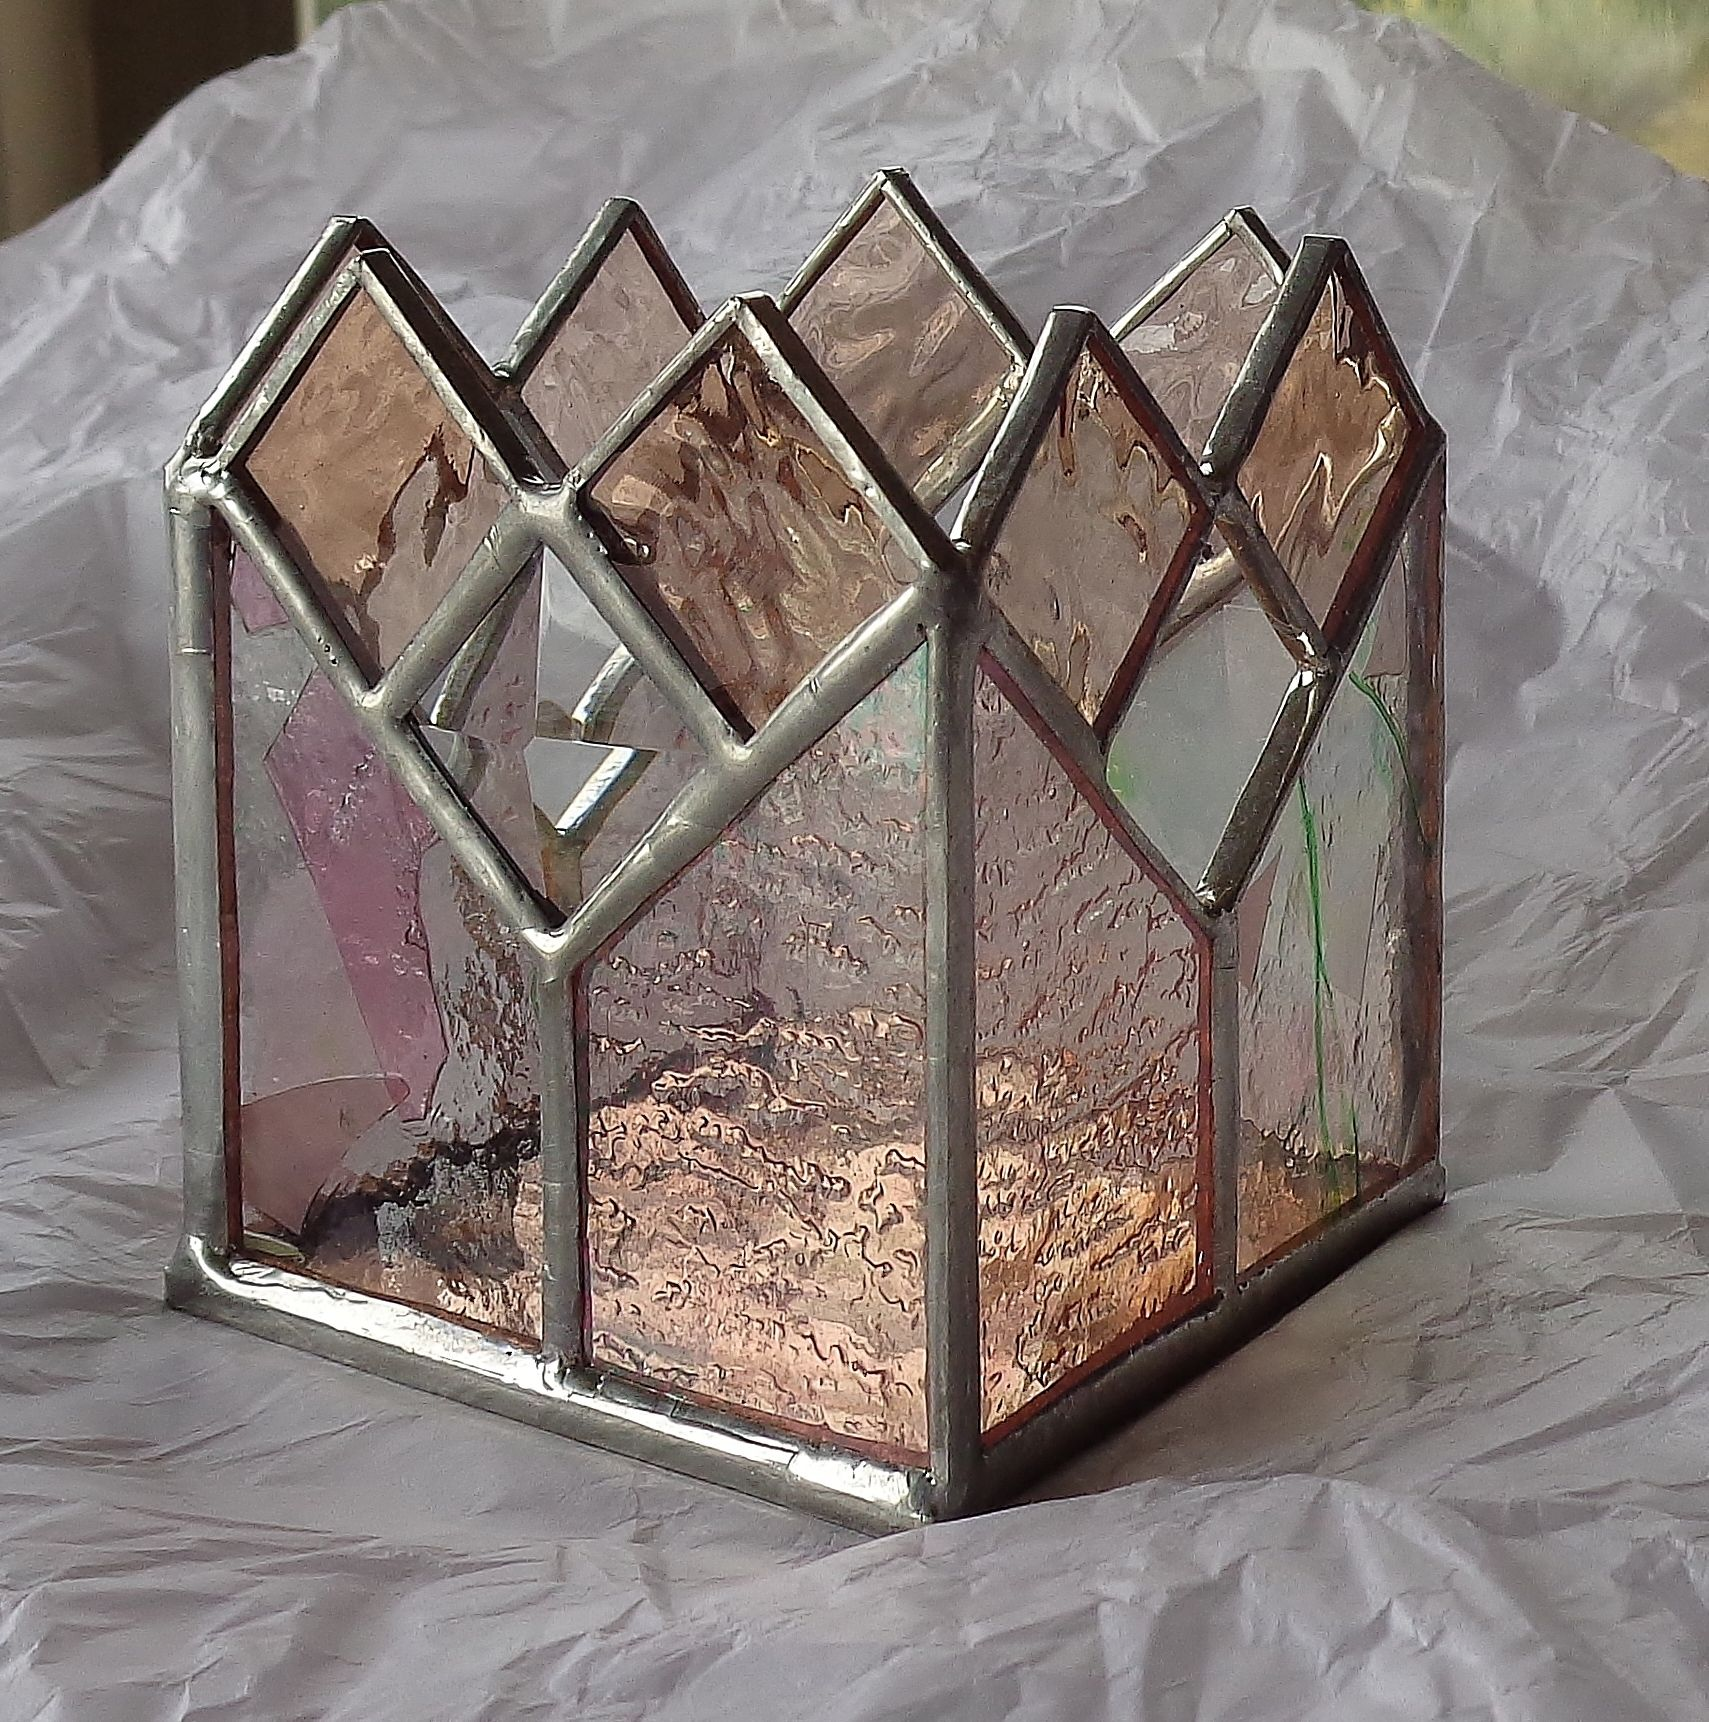 Home Decor Unique Jewelry Hand Crafted Gifts Candles In: Hand Made Stained Glass Candle Holder By Krysia Designs